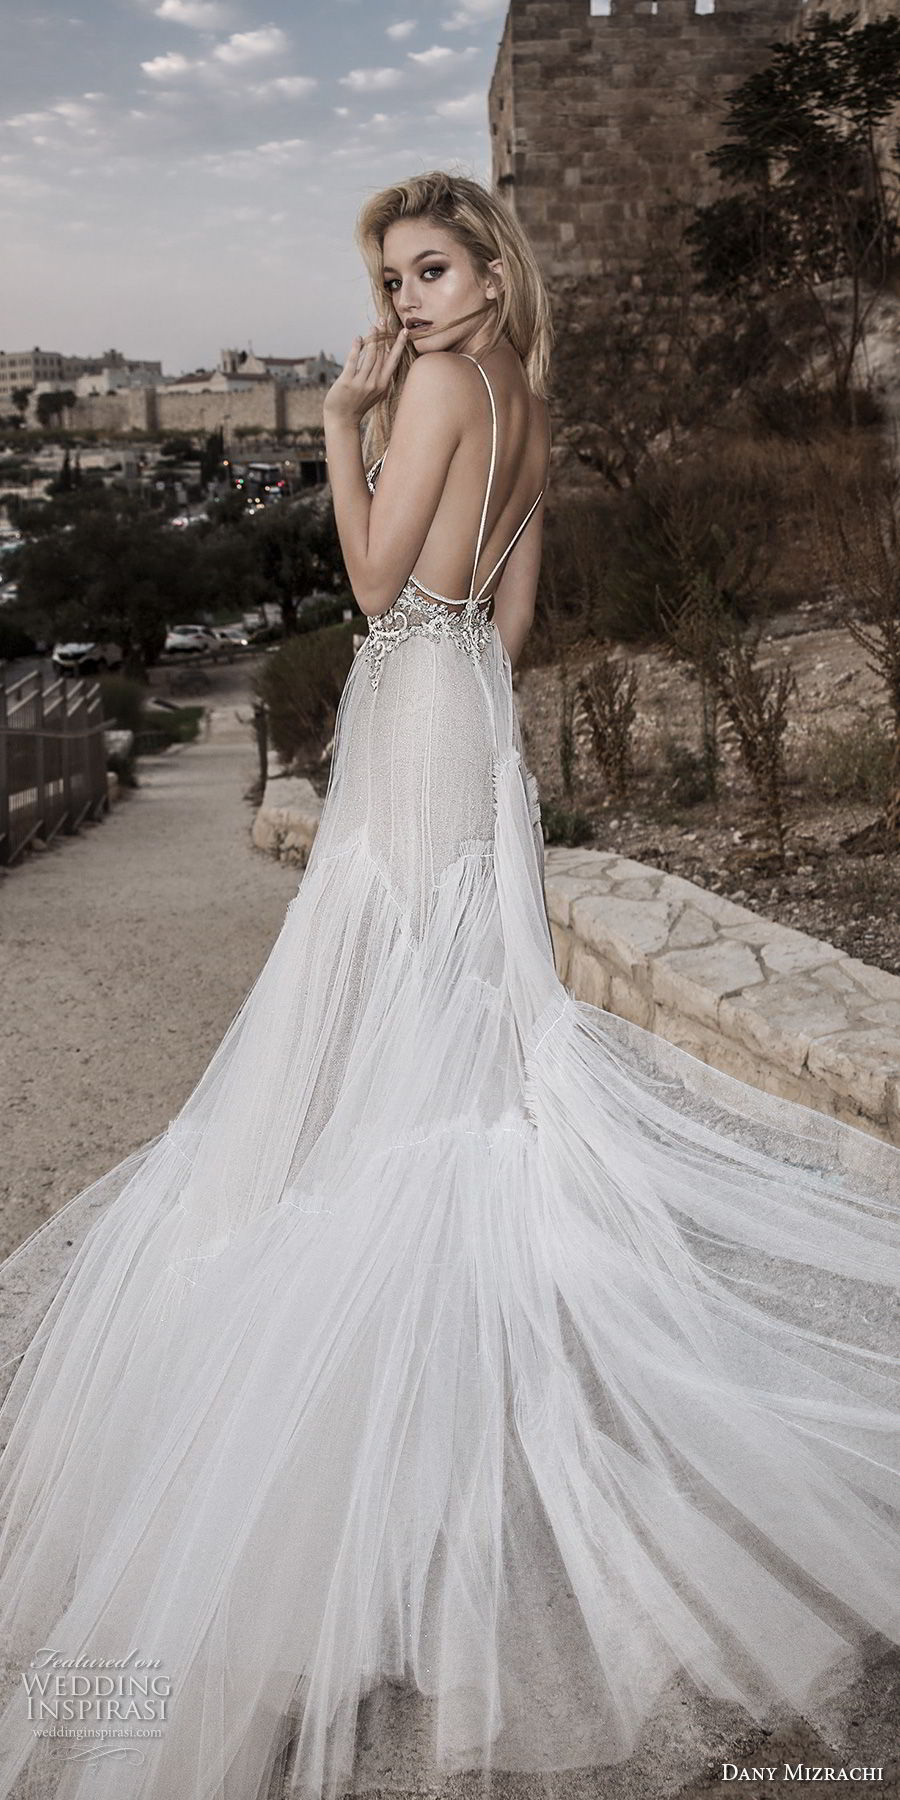 dany mizrachi spring 2018 bridal spaghetti strap sweetheart neckline heavily embellished romantic bohemian a  line wedding dress open strap back chapel train (31) bv